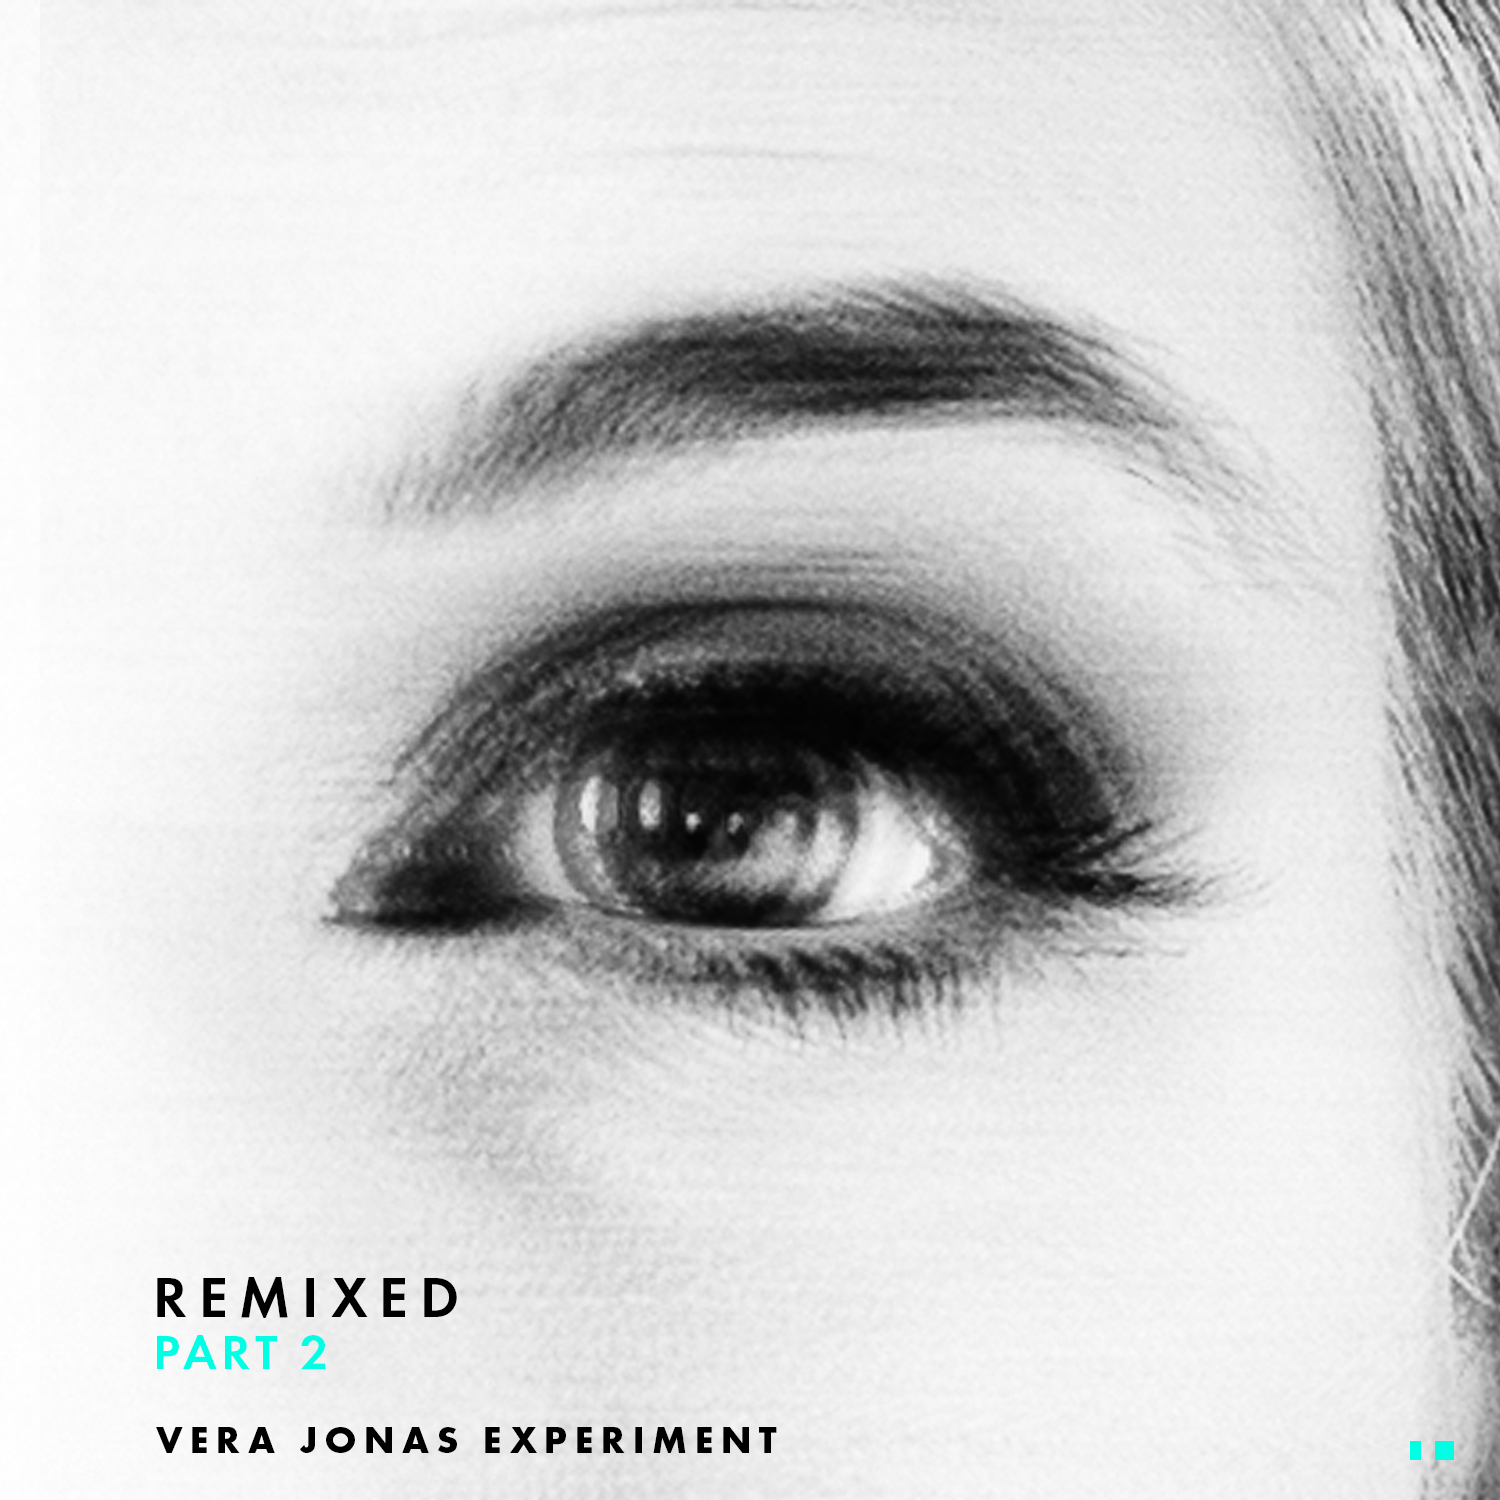 Vera Jonas Experiment Remixed part 2